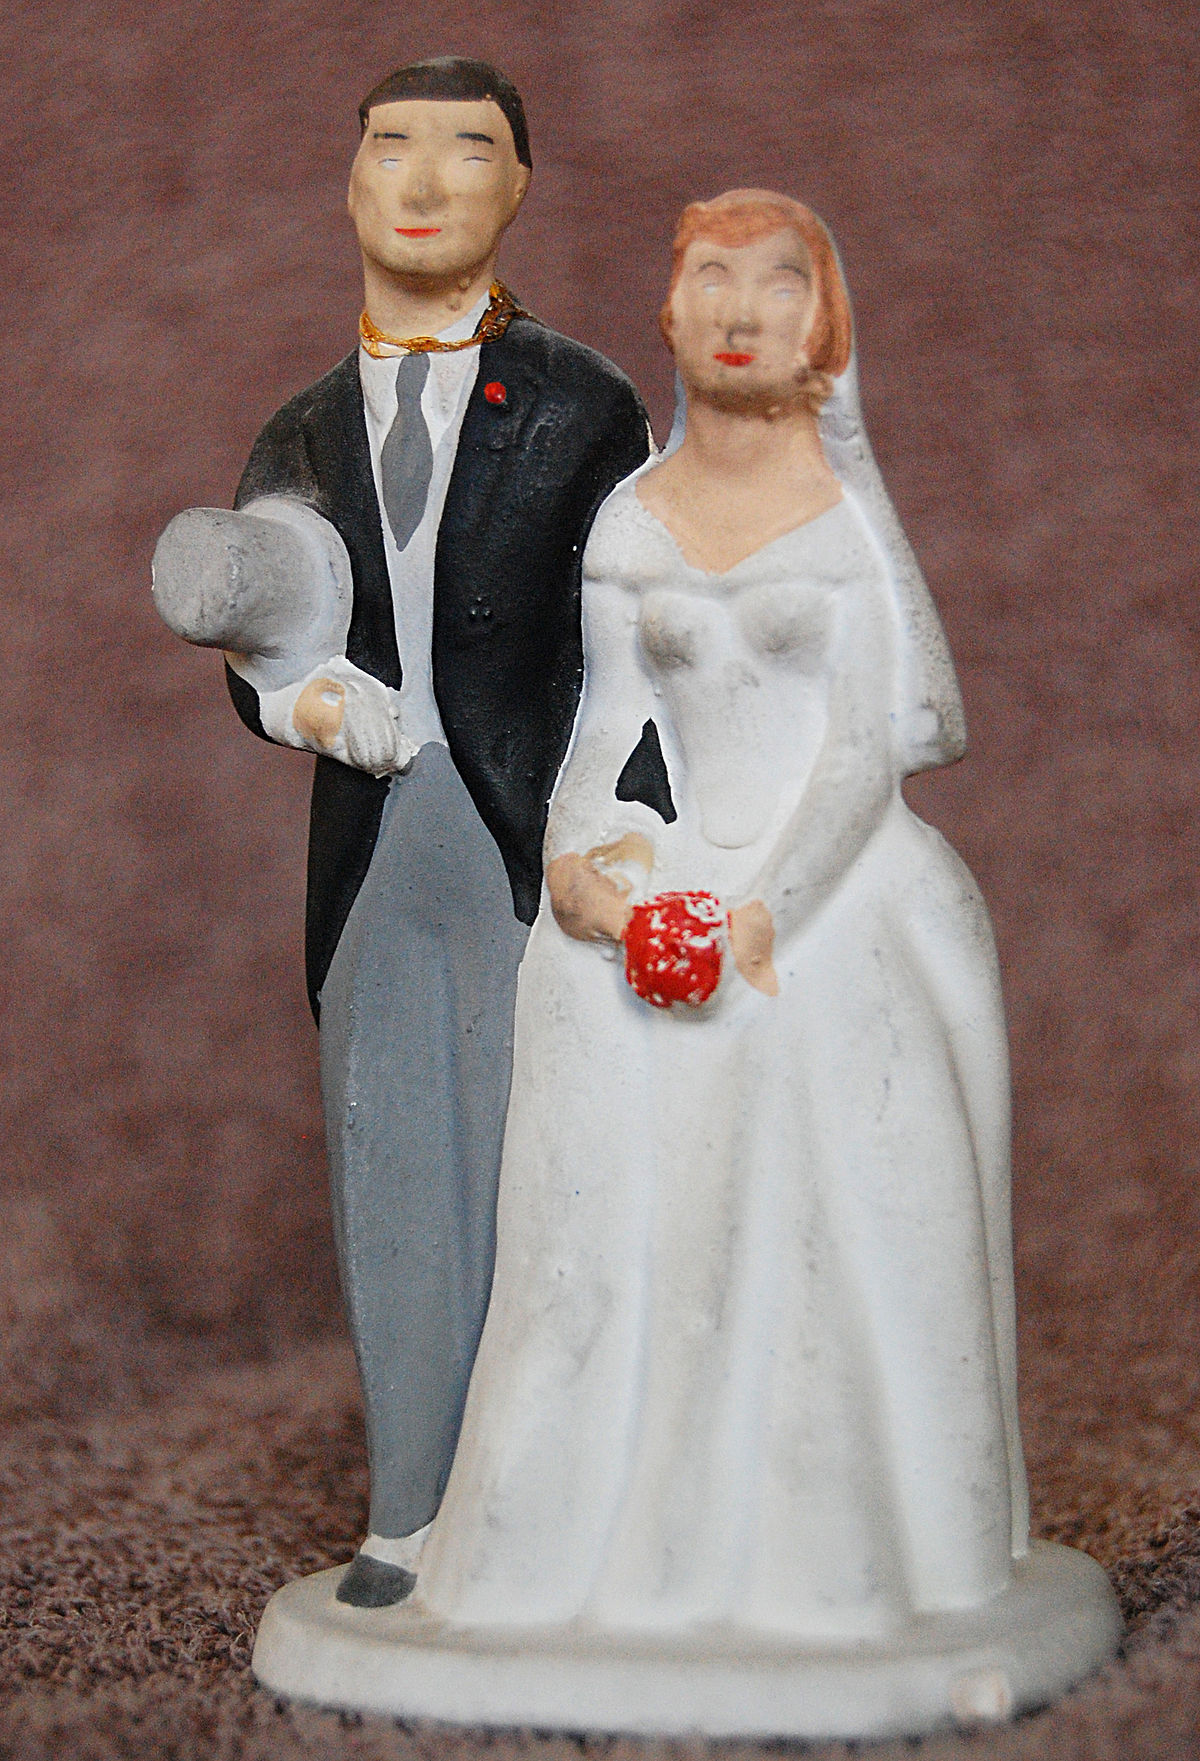 wedding cake topper wikipedia. Black Bedroom Furniture Sets. Home Design Ideas